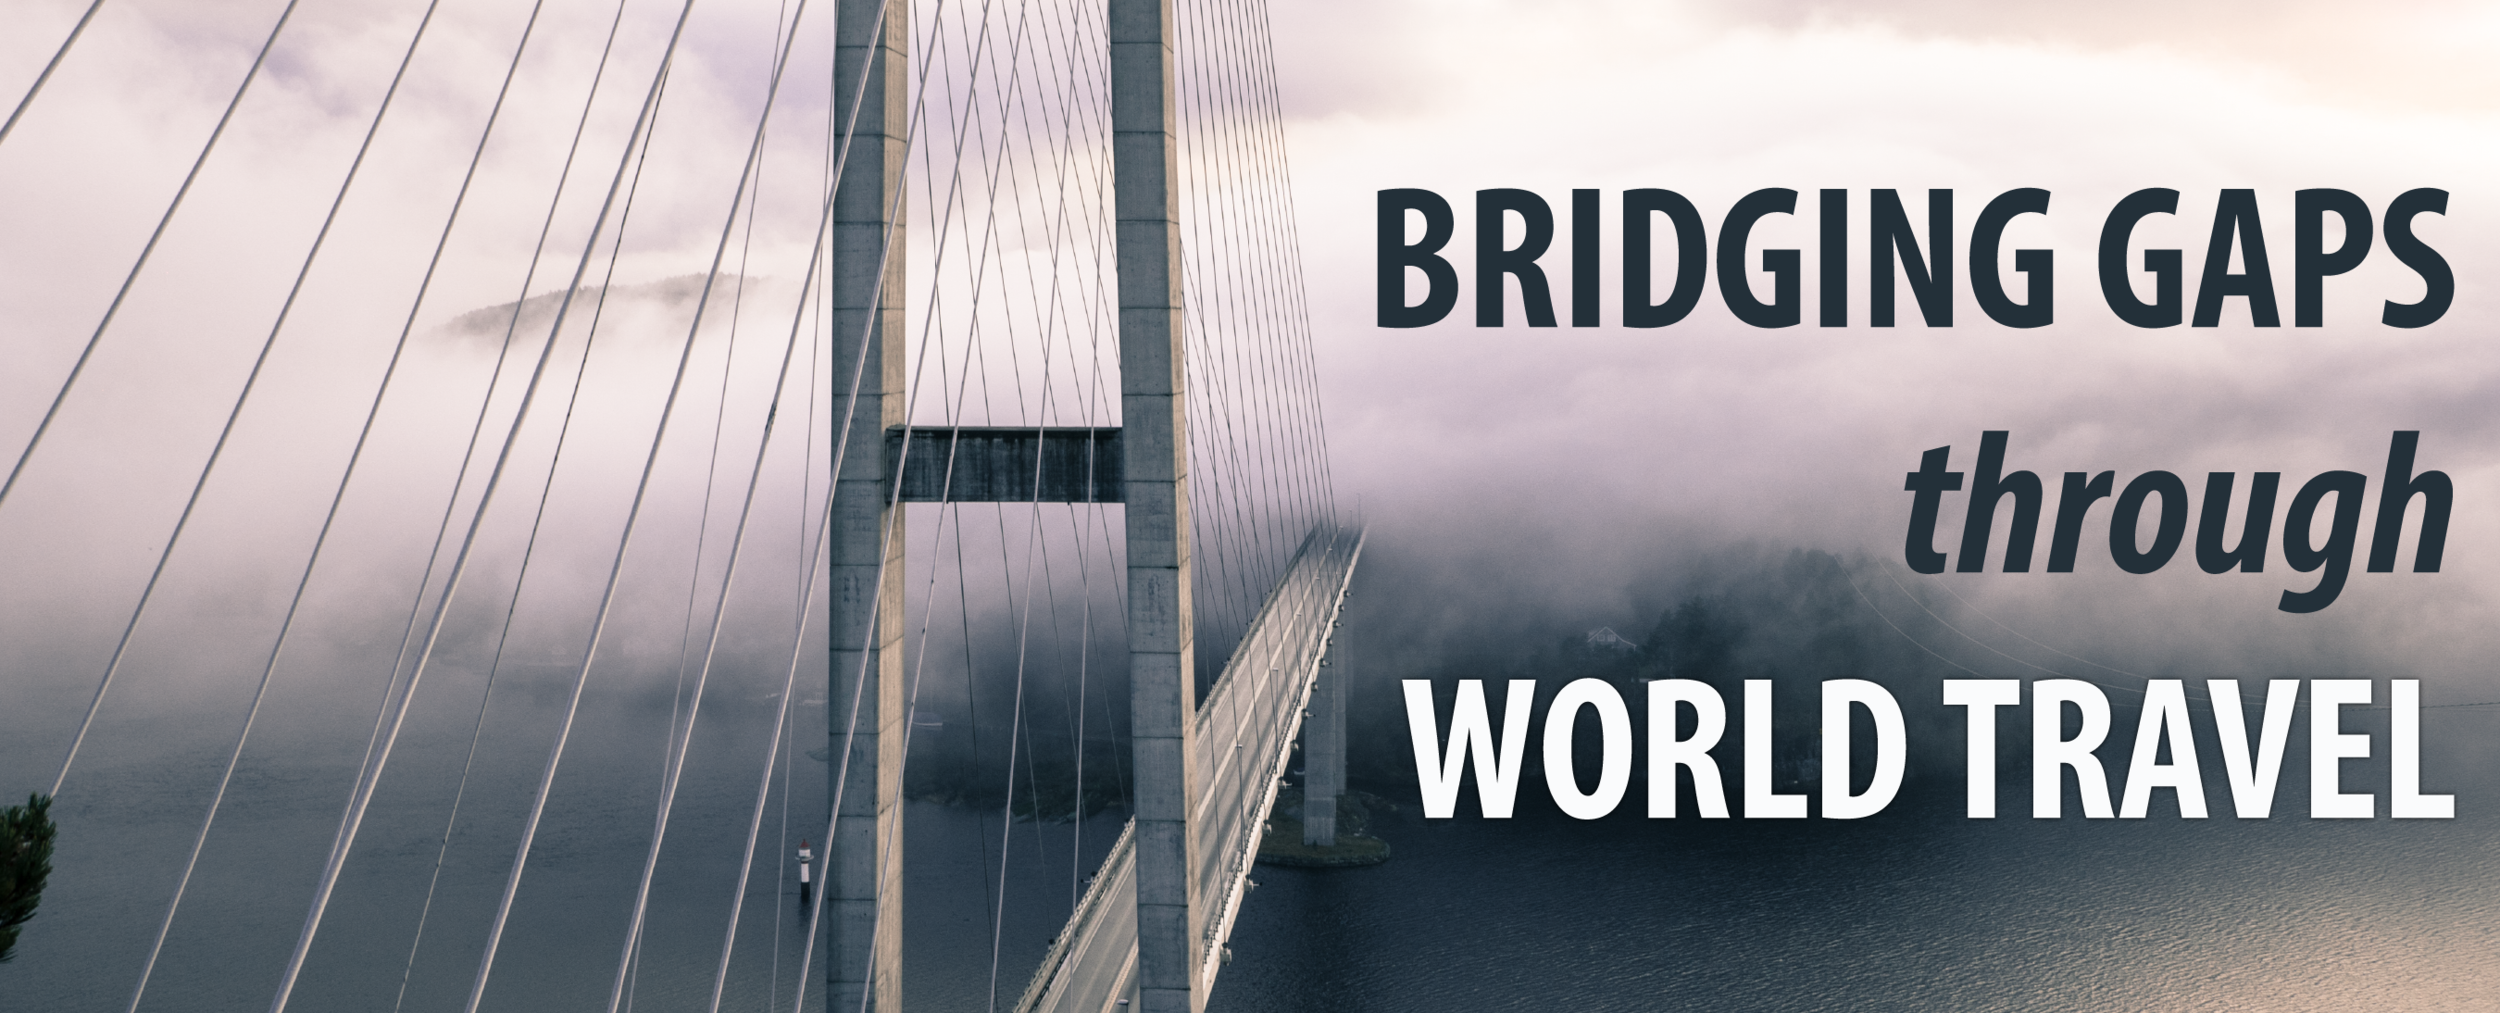 Bridging Gaps Through World Travel-01.png